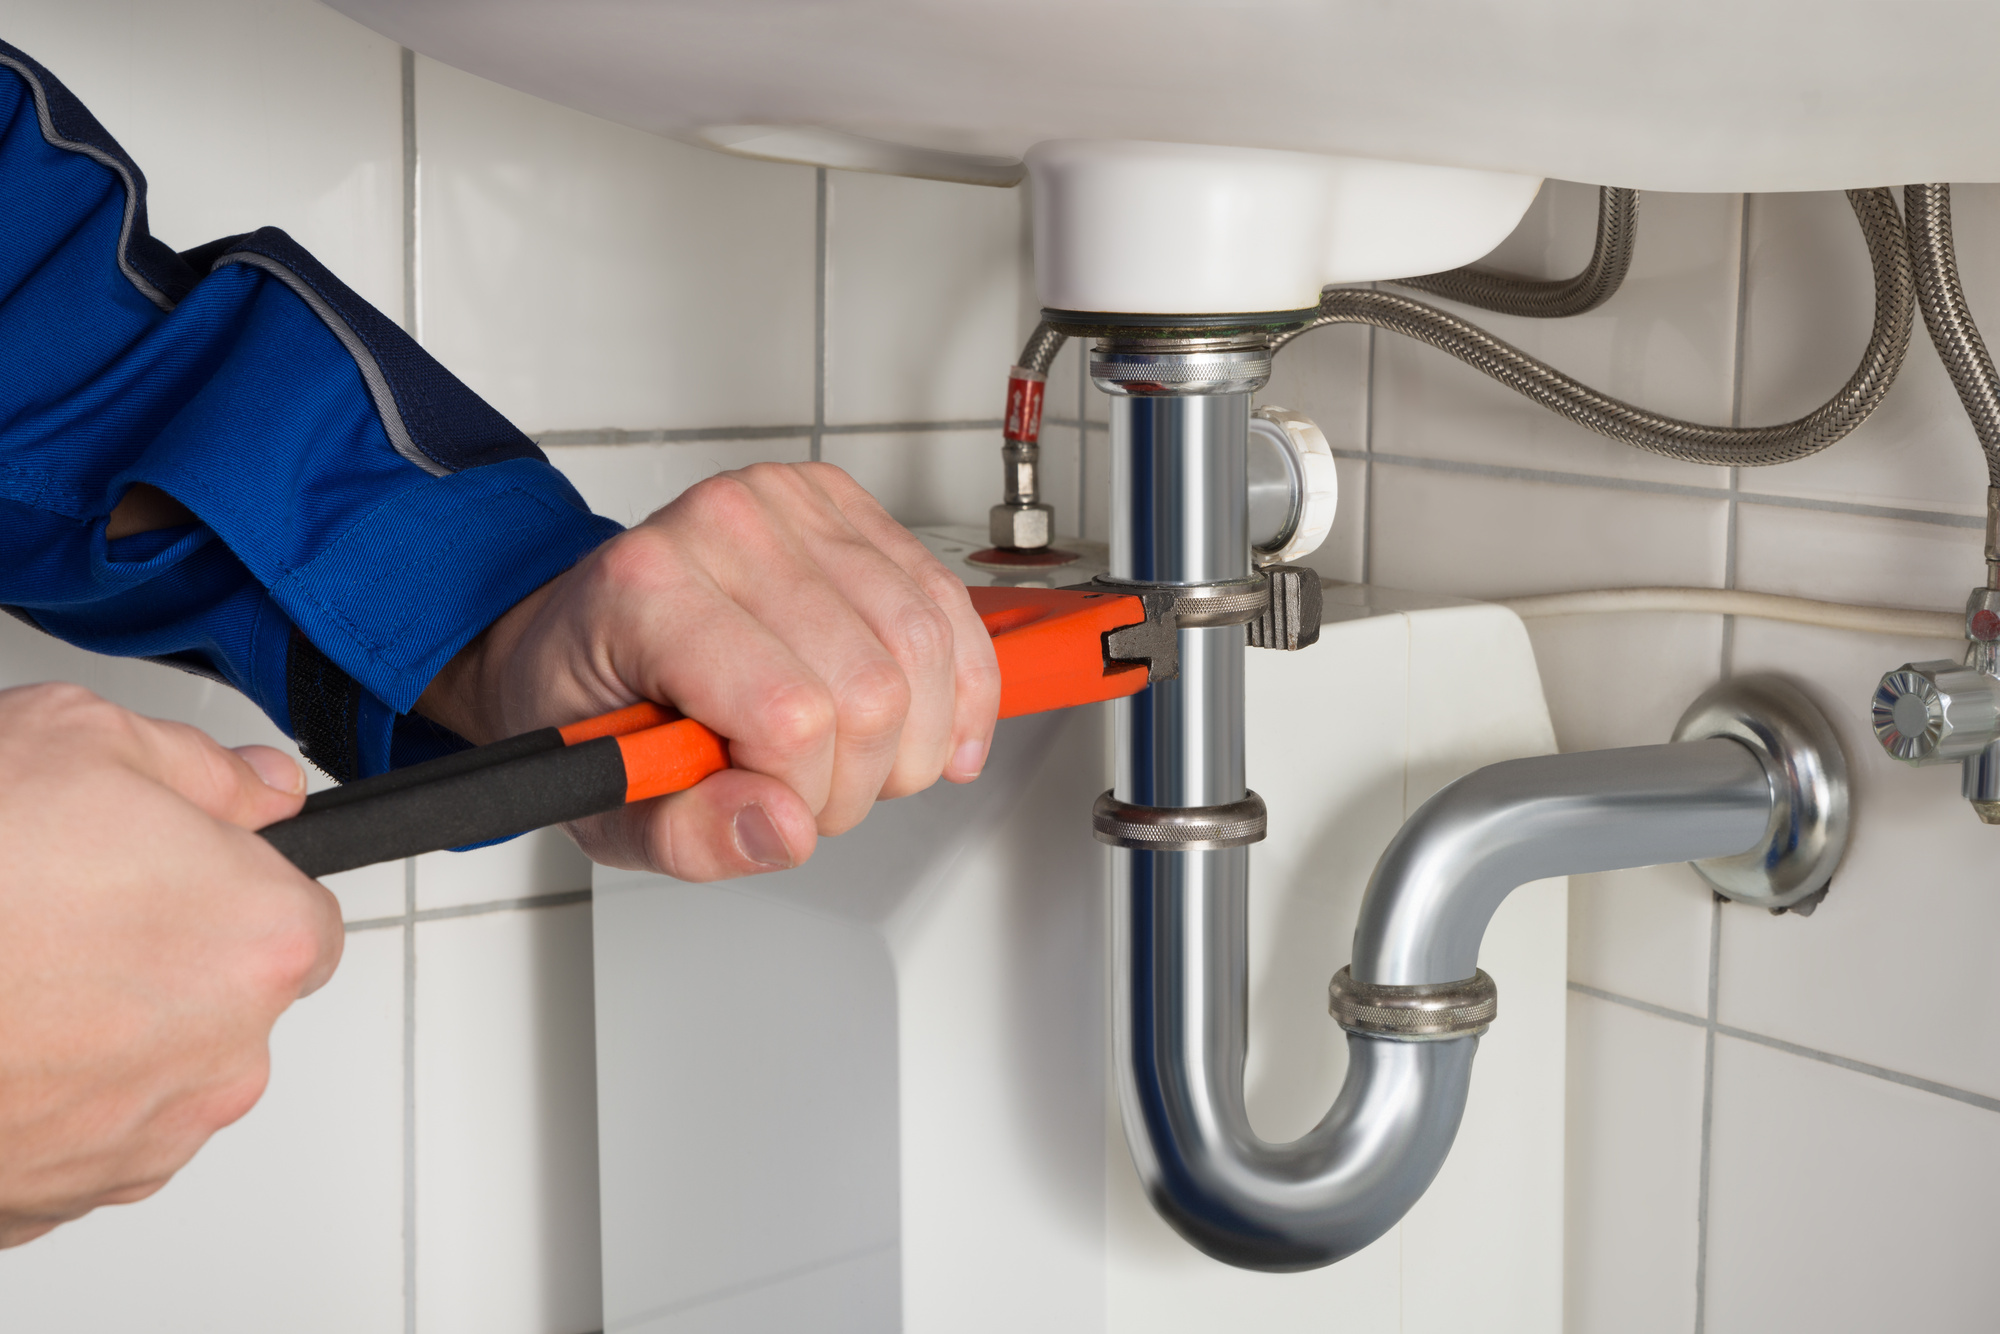 pipe maintenance - Pipe Maintenance for Your Winter Home